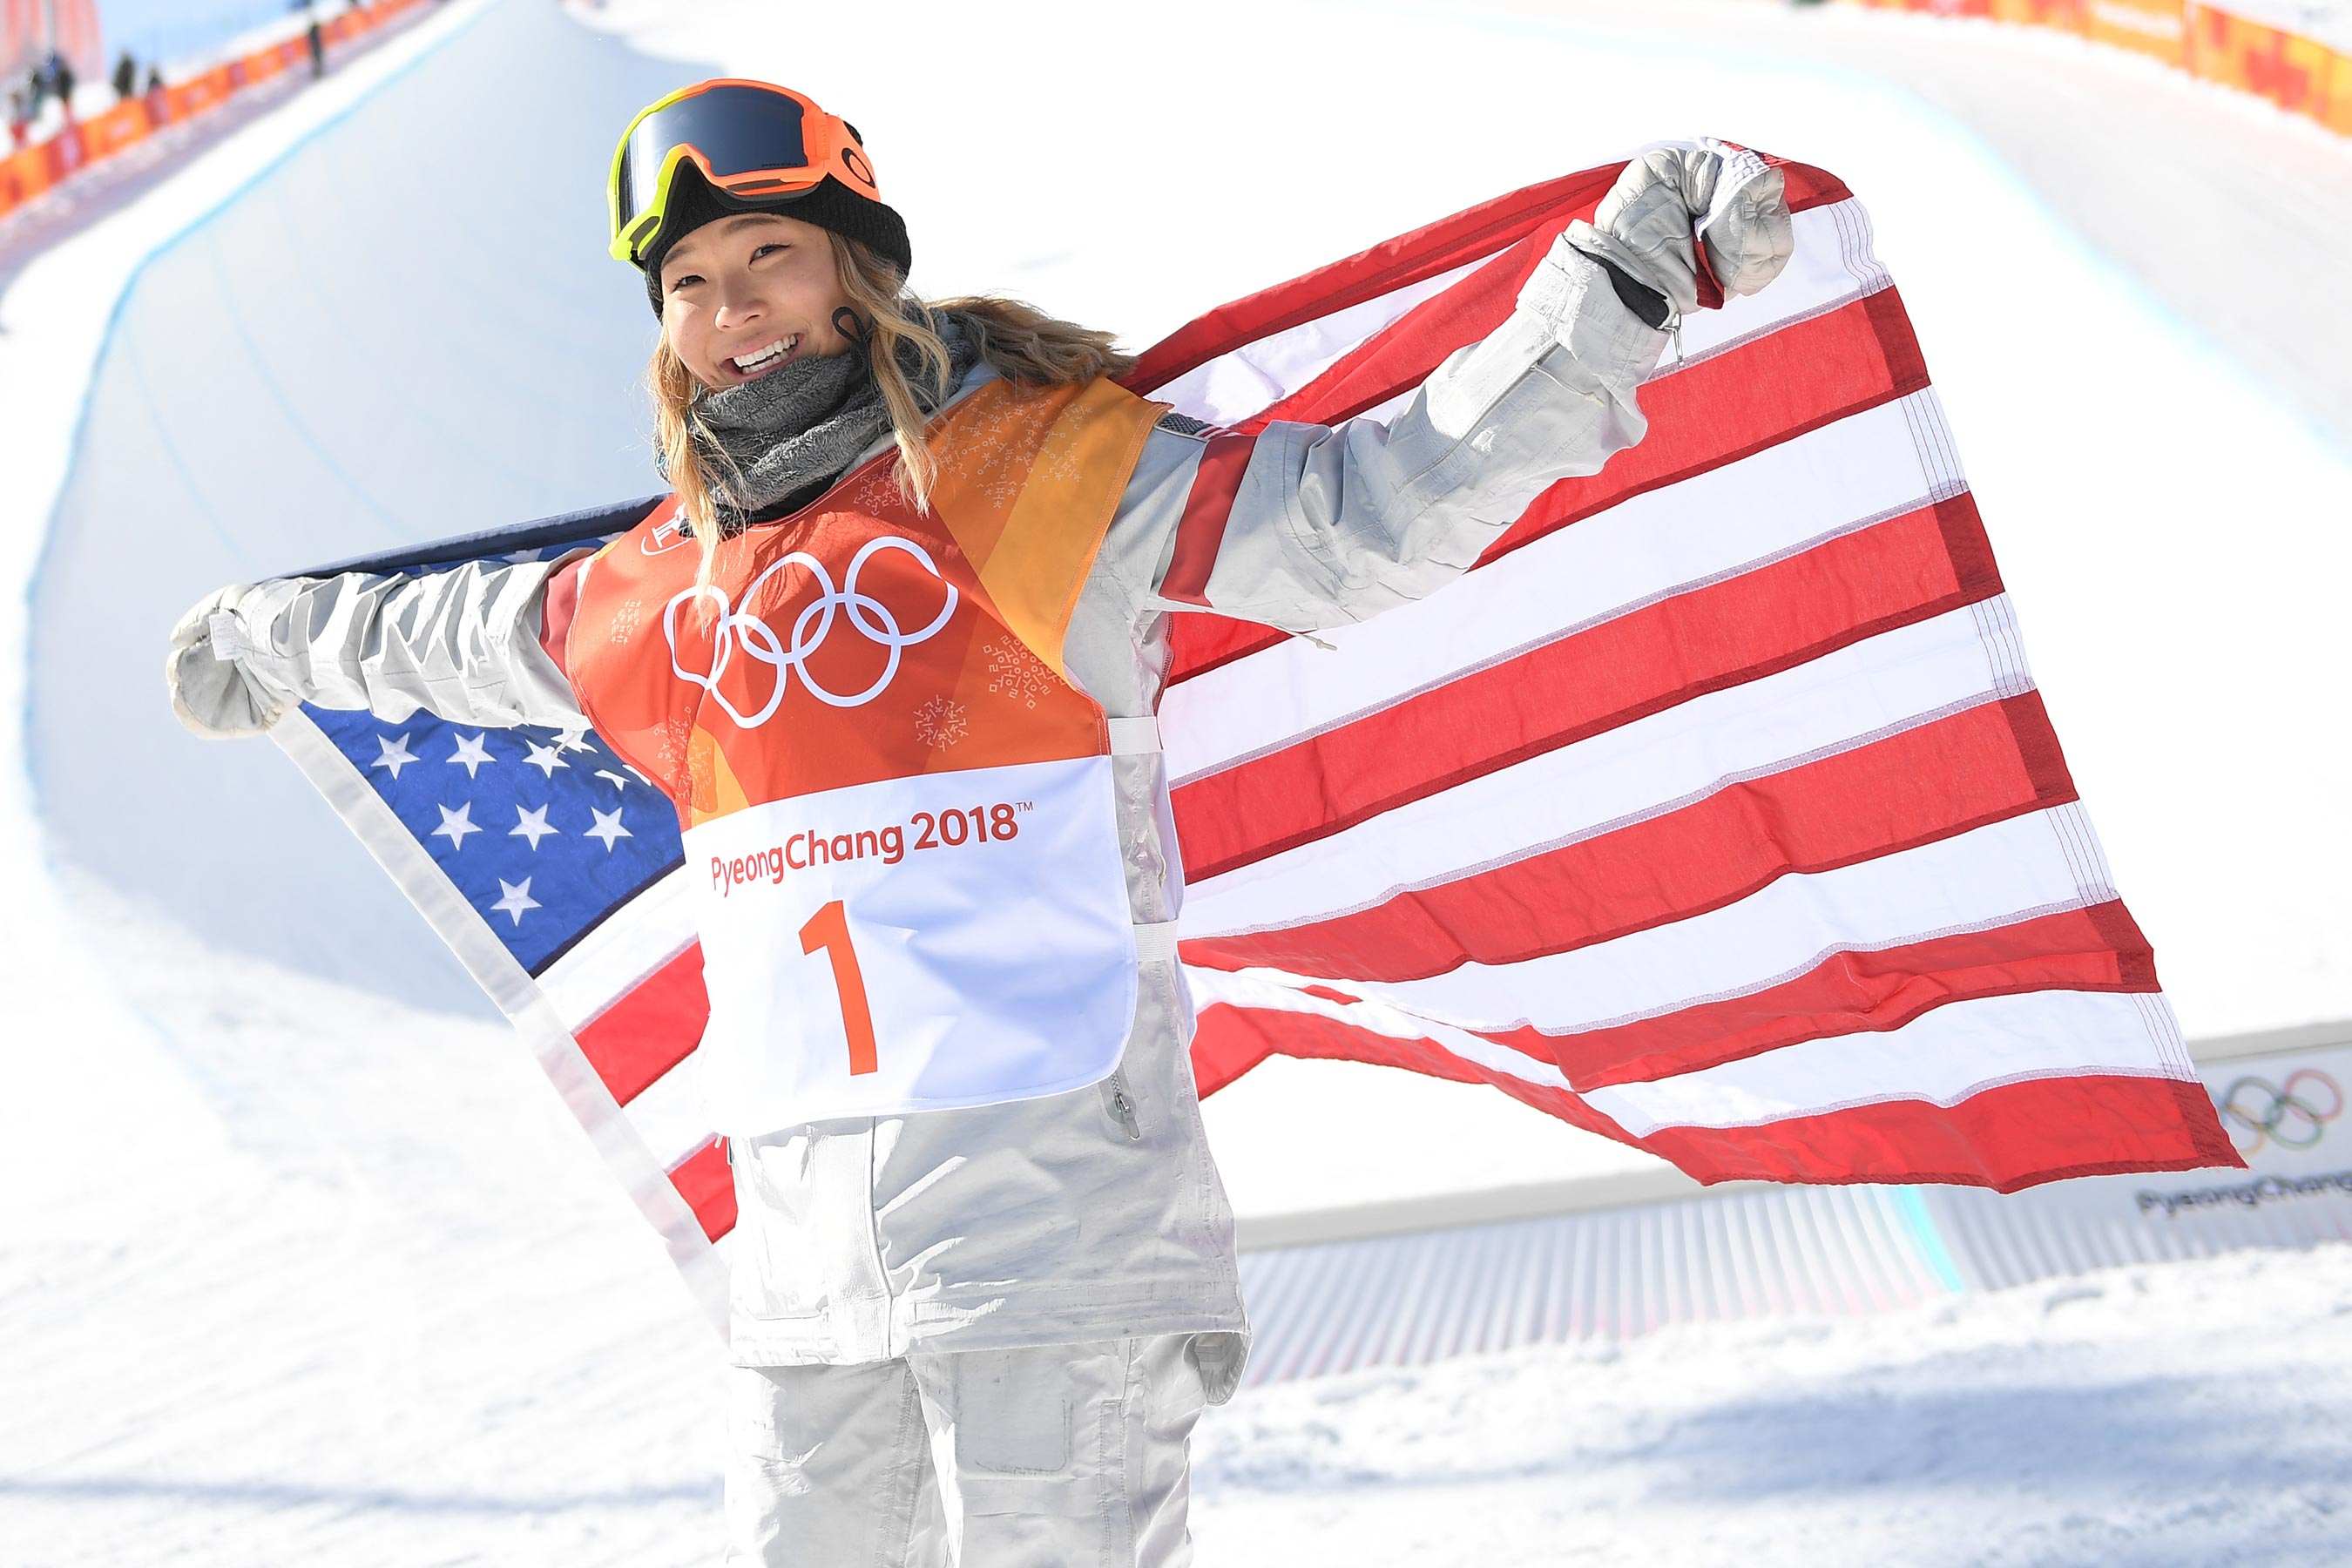 Olympics 2018: Snowboarder Chloe Kim's best moments